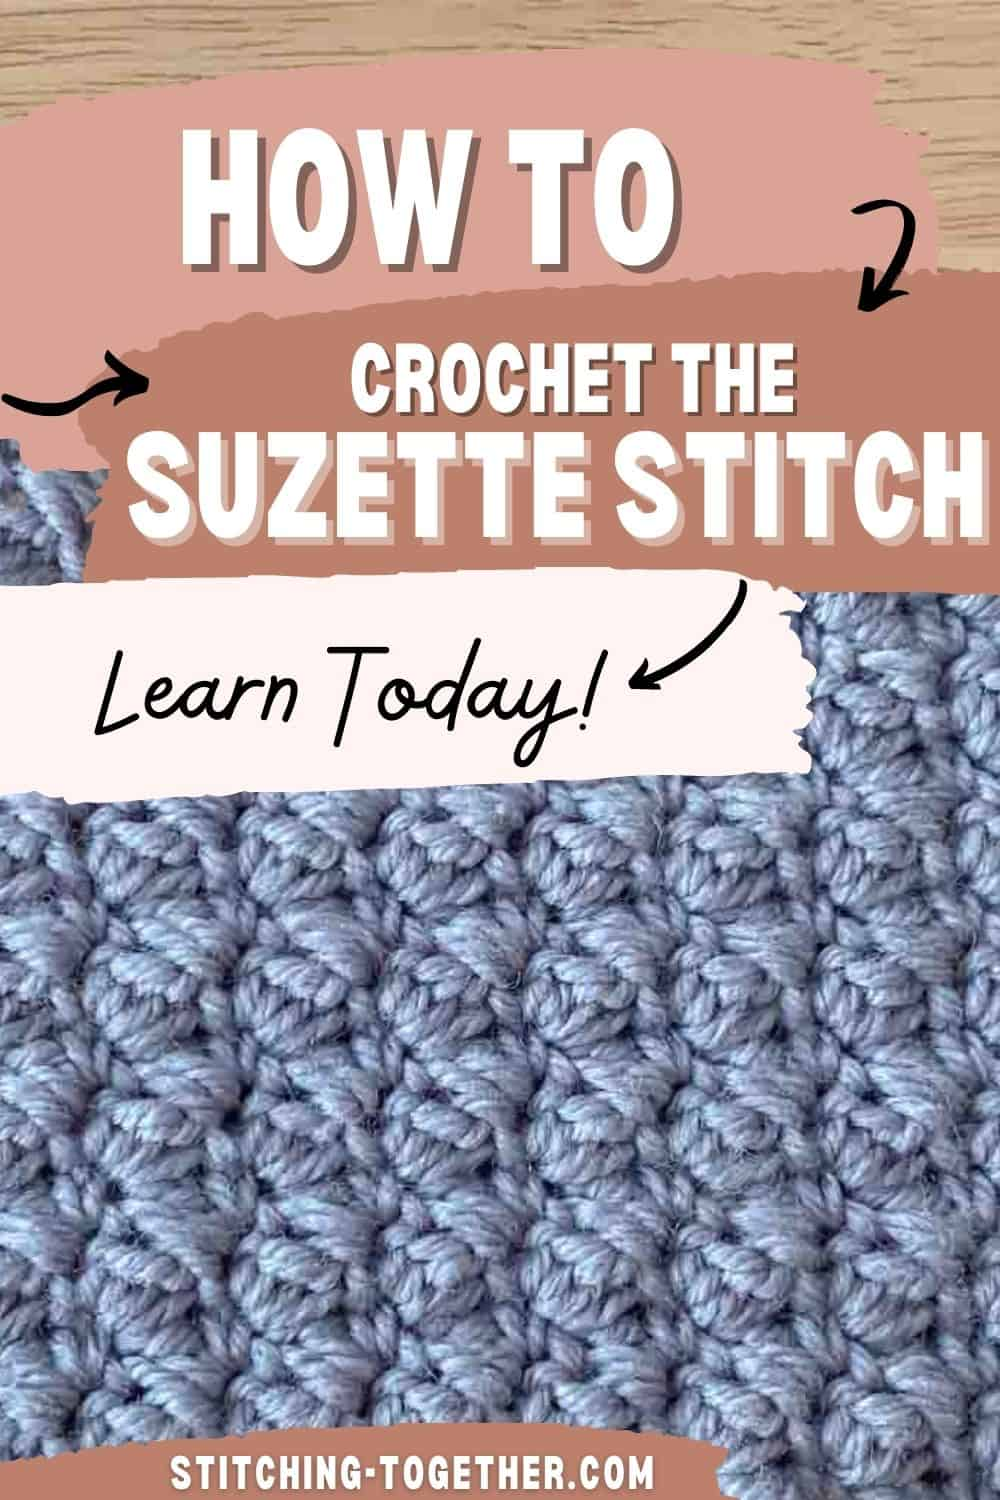 close up of suzette stitch crochet with text saying how to crochet the suzette stitch learn today!